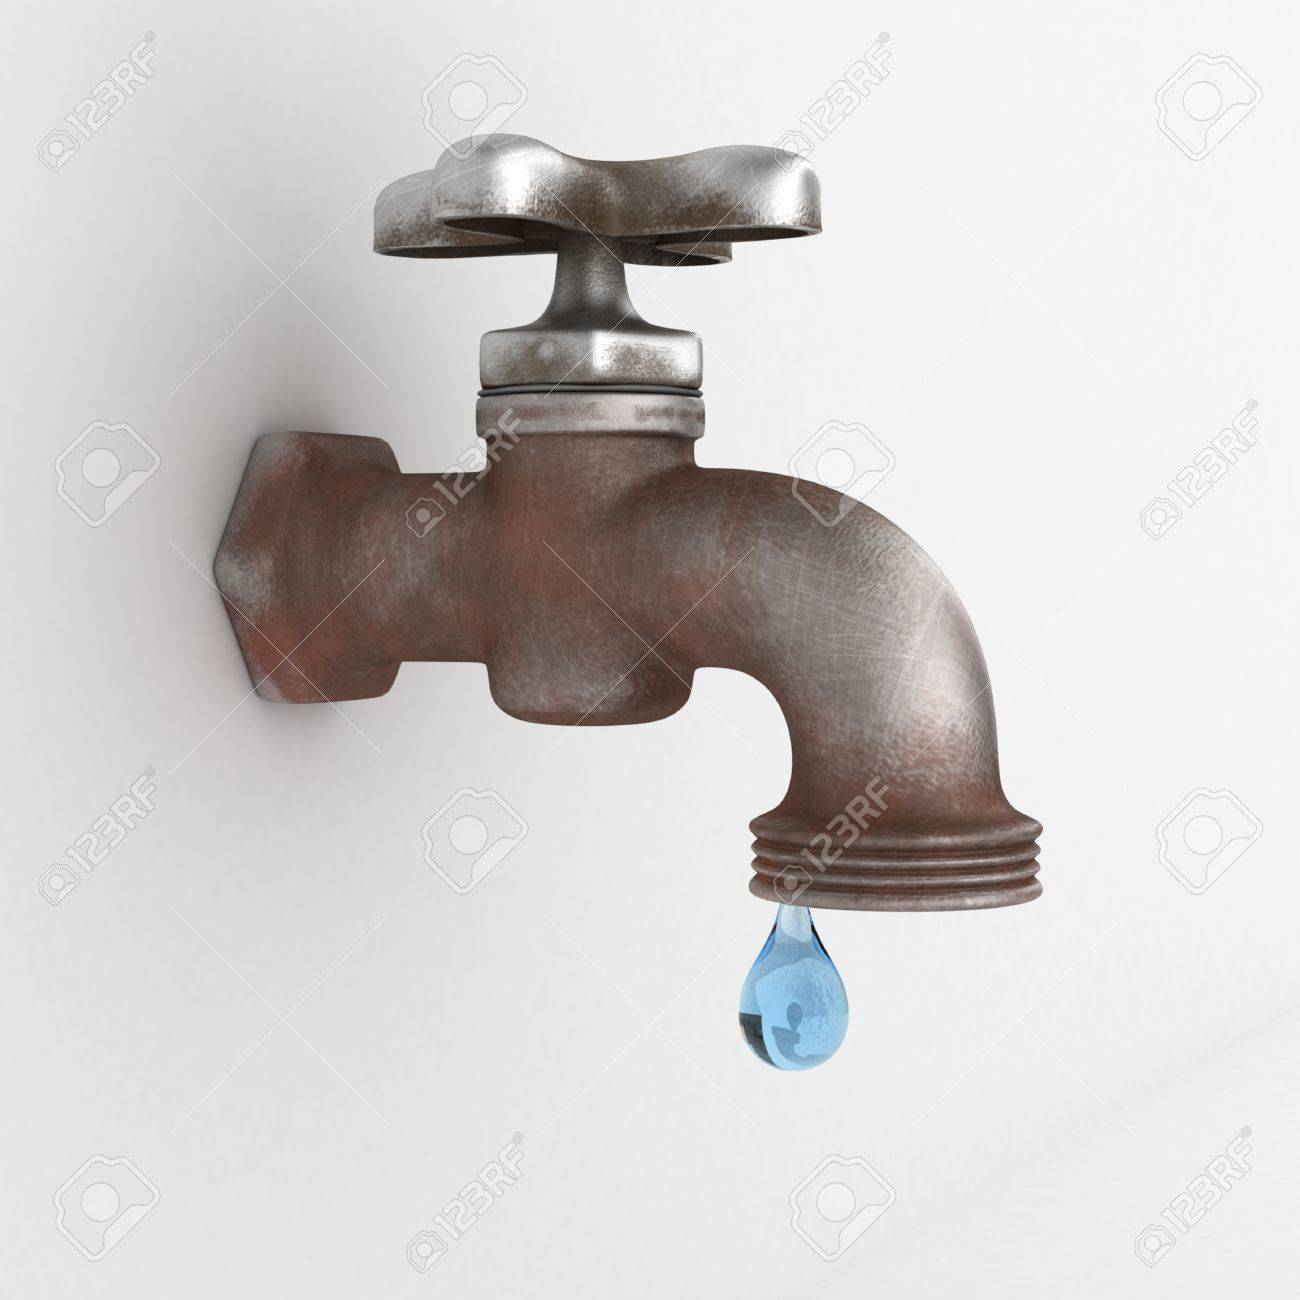 Dripping Tap With Drop On White Background Stock Photo, Picture And ...